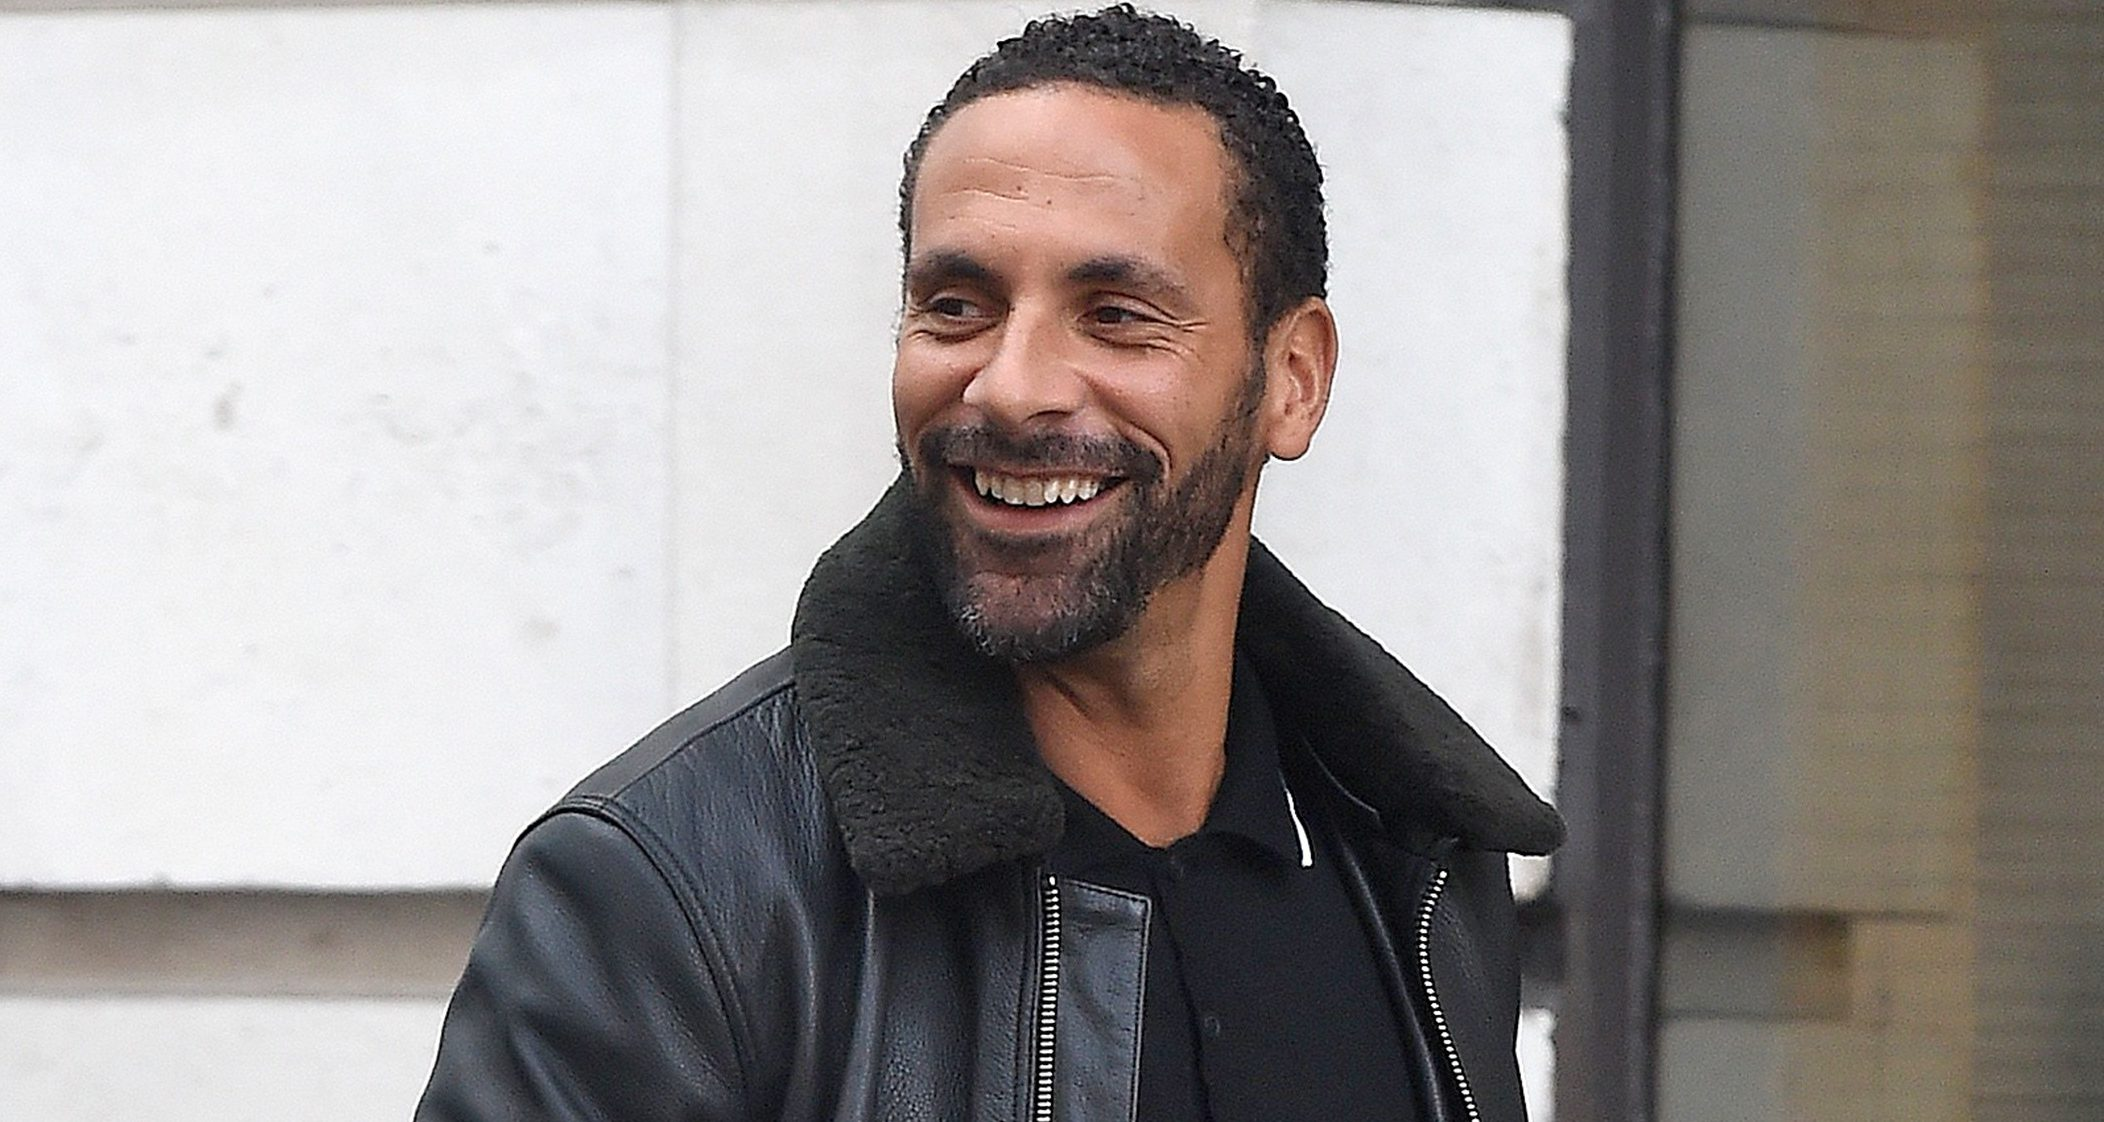 Rio Ferdinand had a grim mid work-out shock for girlfriend Kate Wright